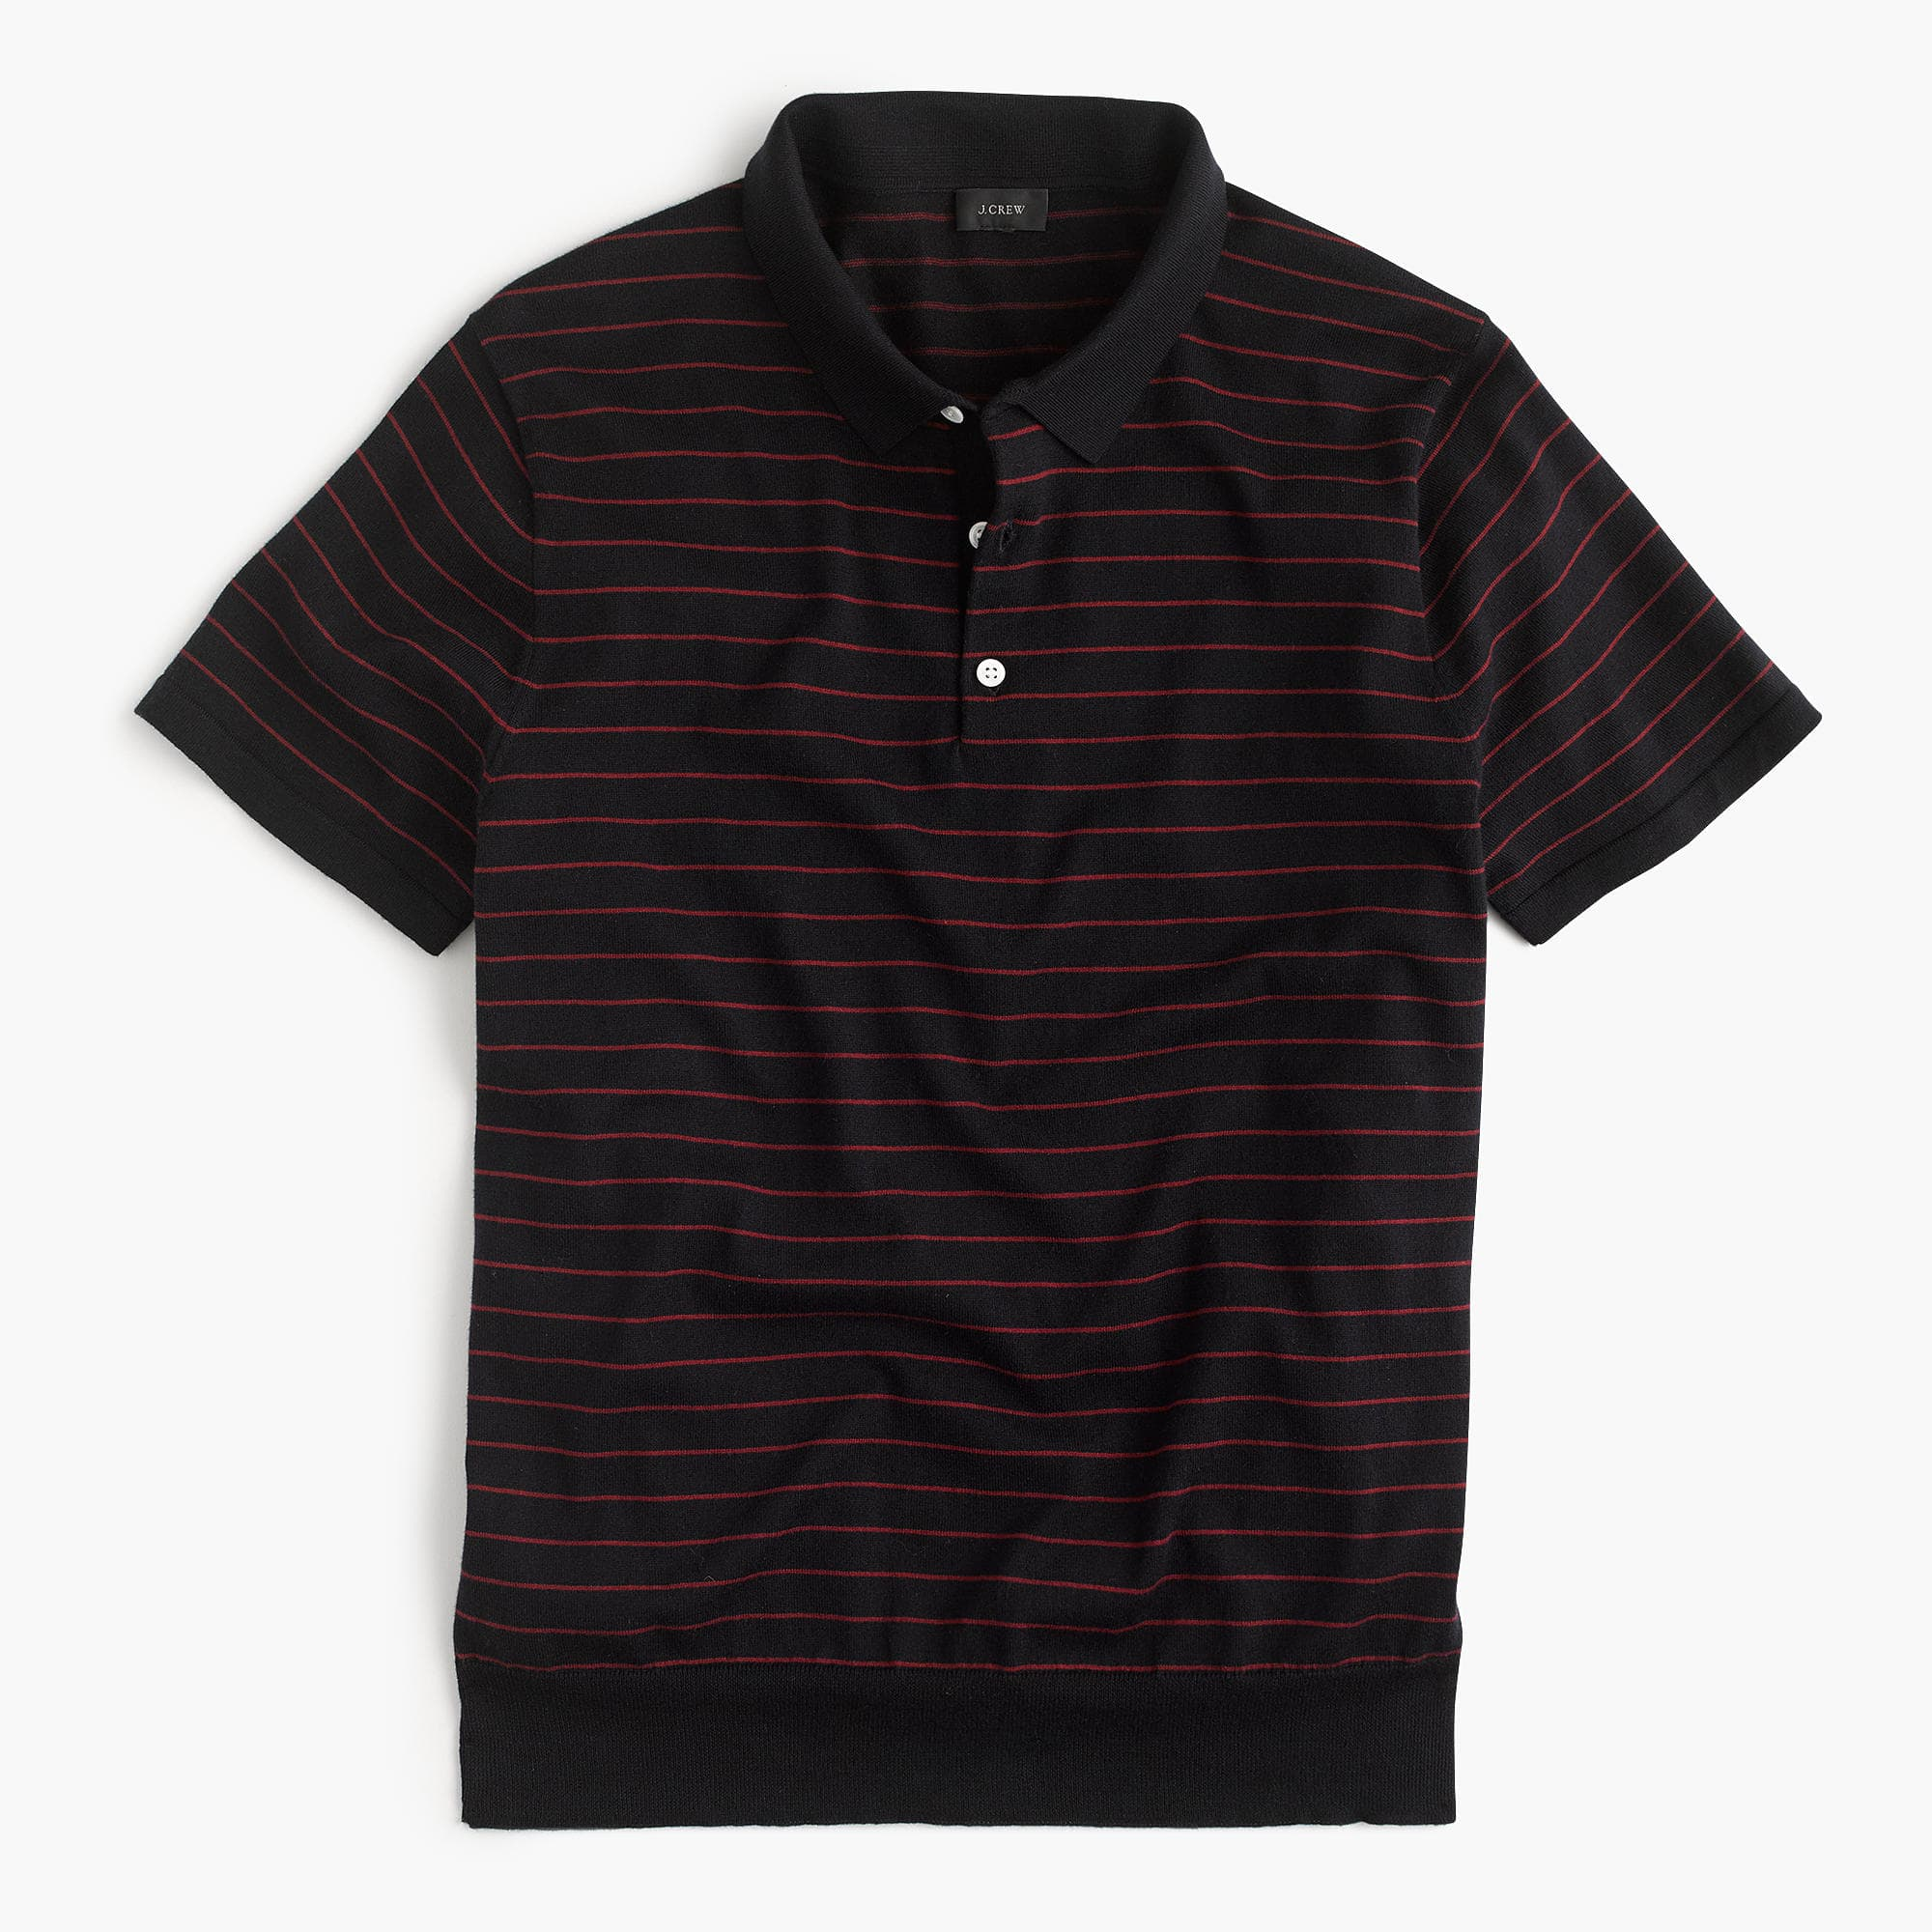 Cotton Mens Polo Shirt in Dark Navy and Red from J. Crew